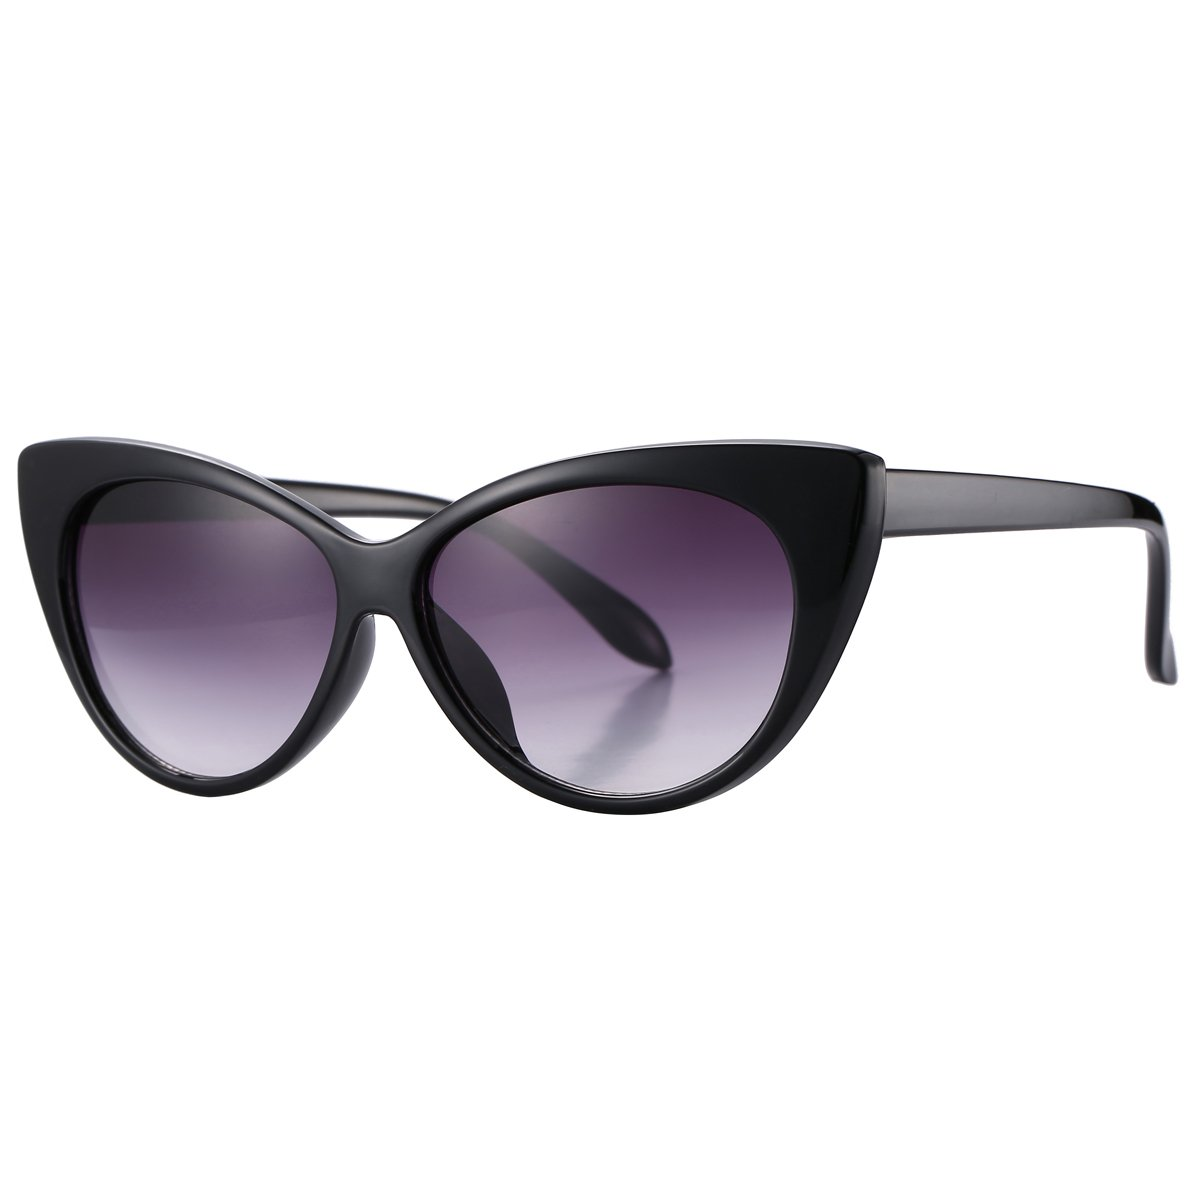 c9cee173d7 Pro Acme Super Cute Vintage Inspired Fashion Mod Chic High Pointed Cat Eye  Sunglasses (Black Frame Grey Lens)